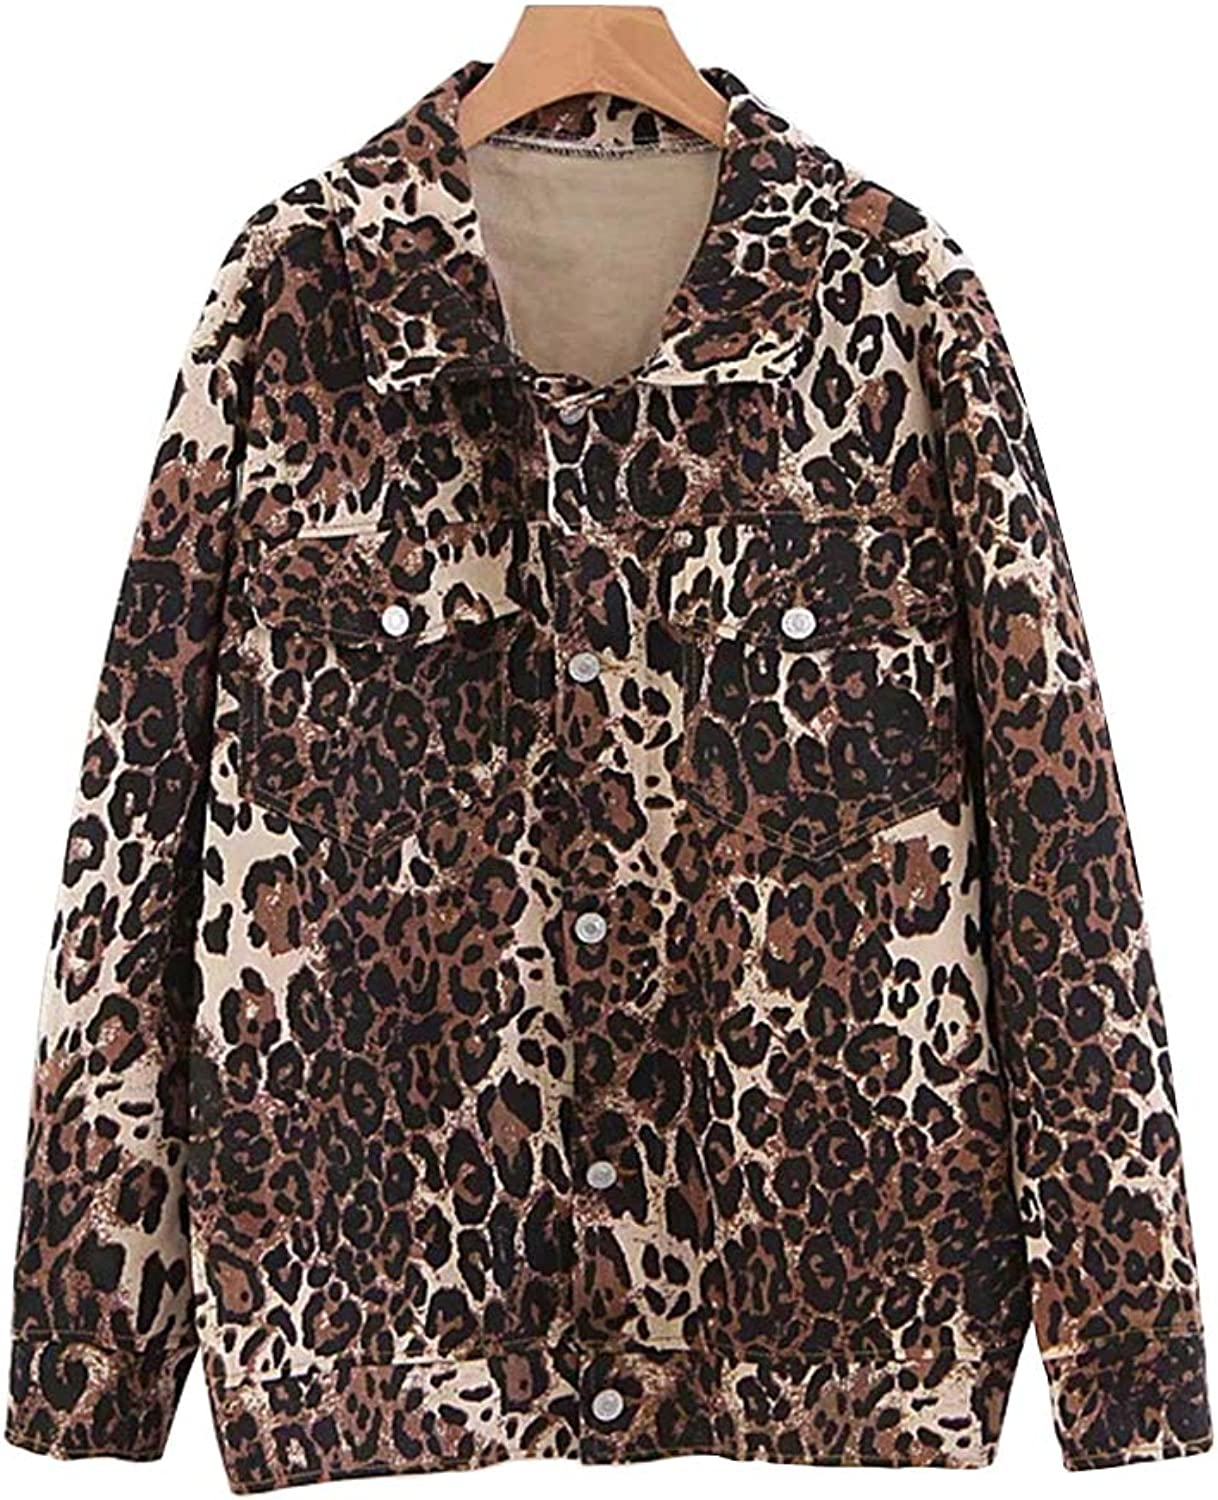 NewCime Women's Loose Long Sleeve Button up Leopard Jacket with Pocket